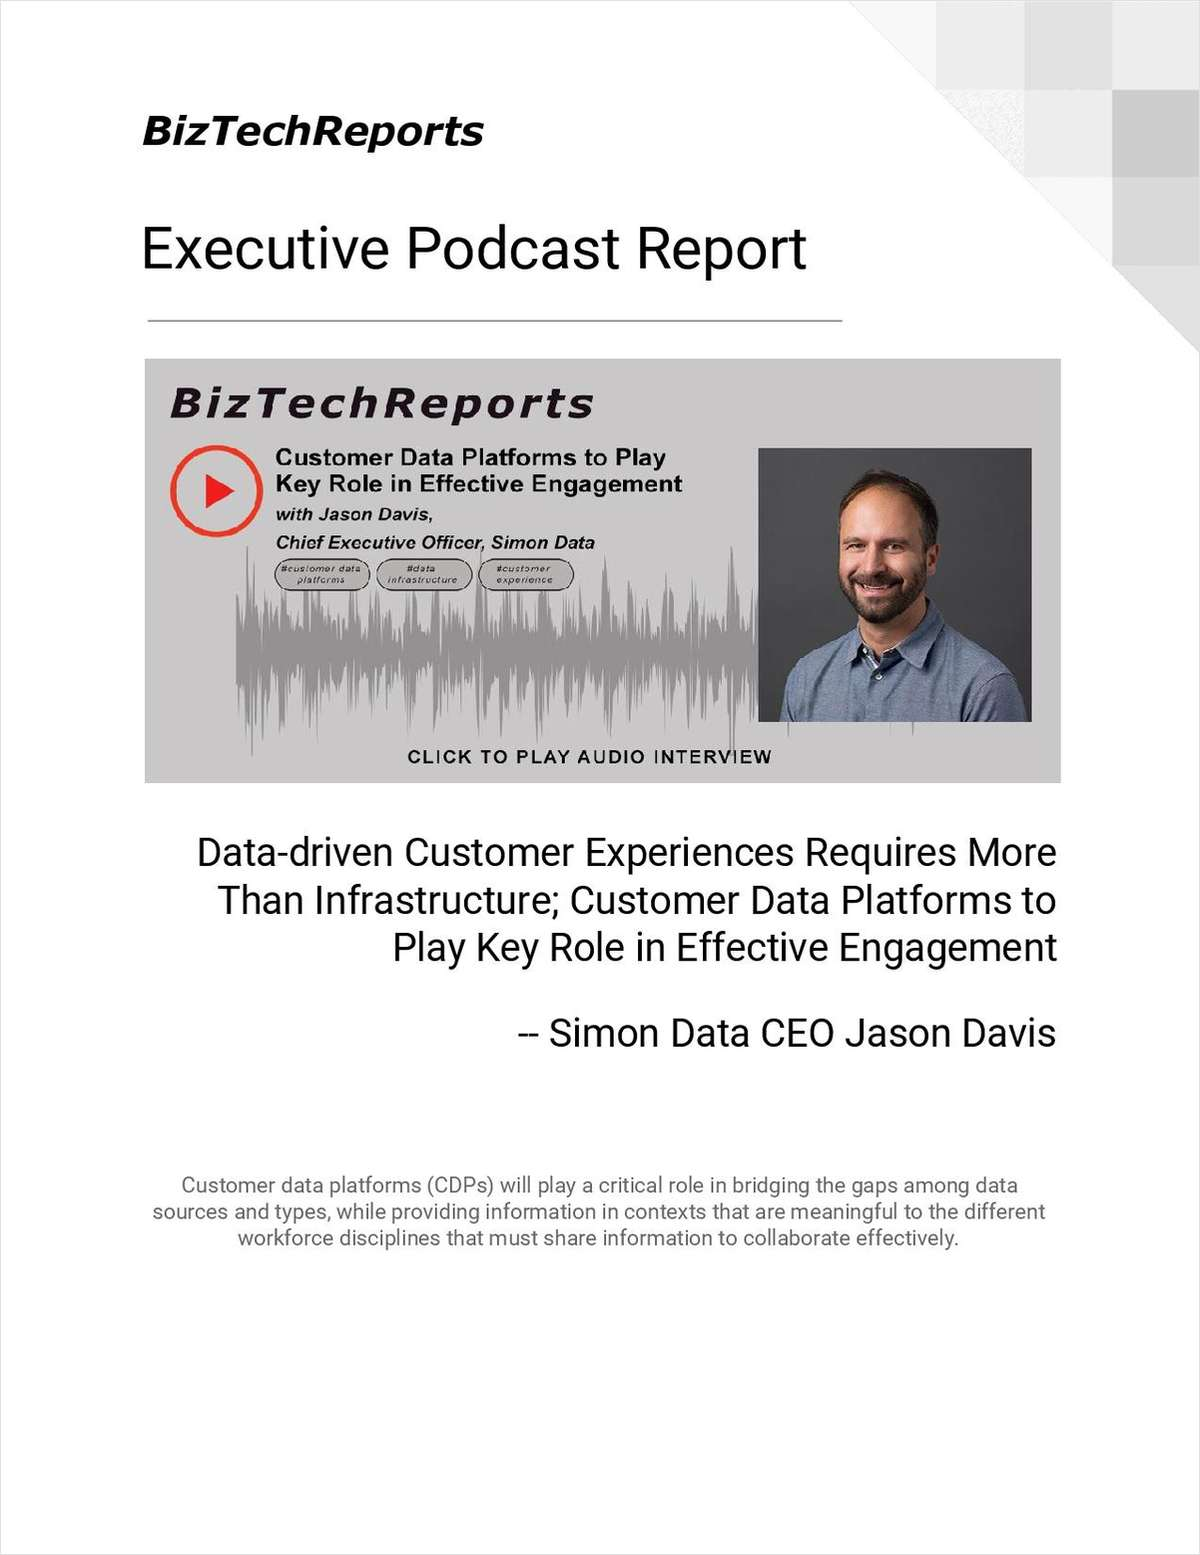 Data-driven Customer Experiences Requires More Than Infrastructure; Customer Data Platforms to Play Key Role in Effective Engagement